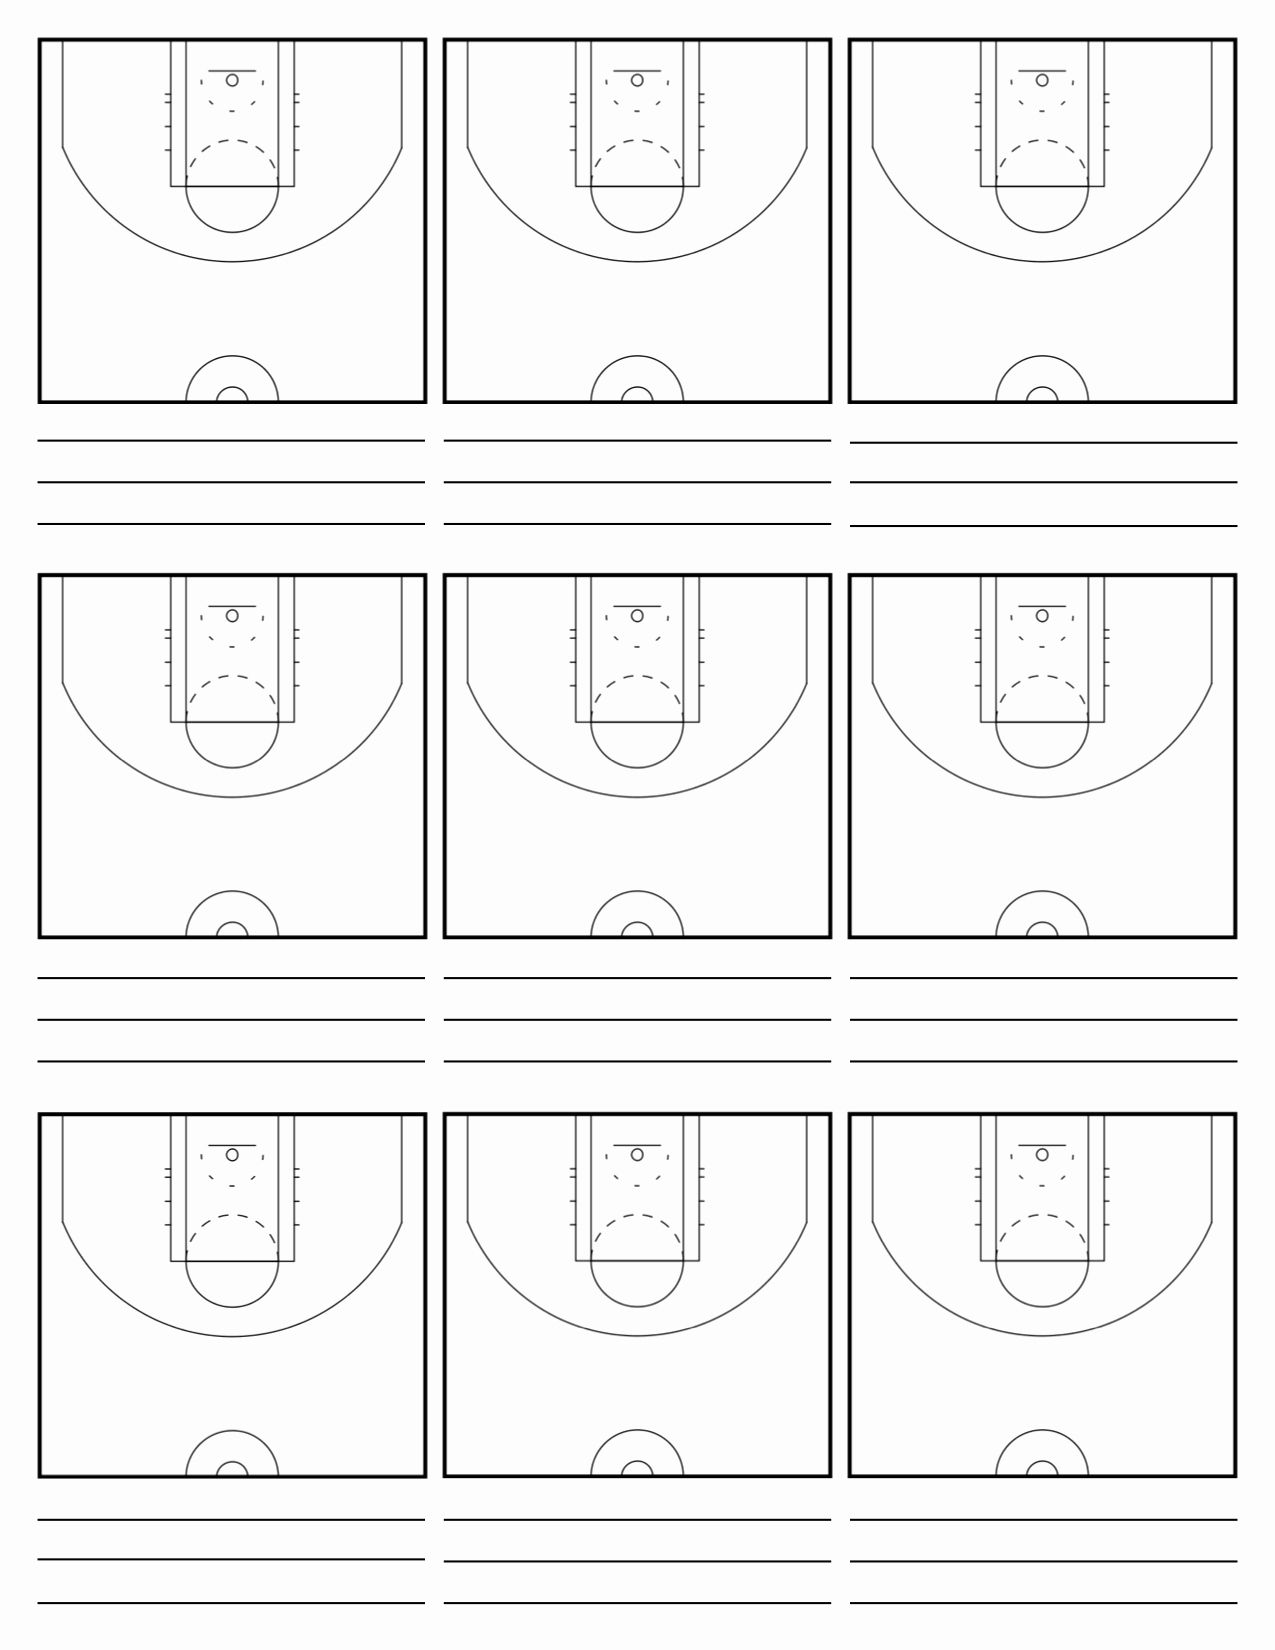 Halfcourt Basketball Diagram : halfcourt, basketball, diagram, Blank, Basketball, Practice, Template, Awesome, Court, Diagrams, Plays, Plays,, Plans,